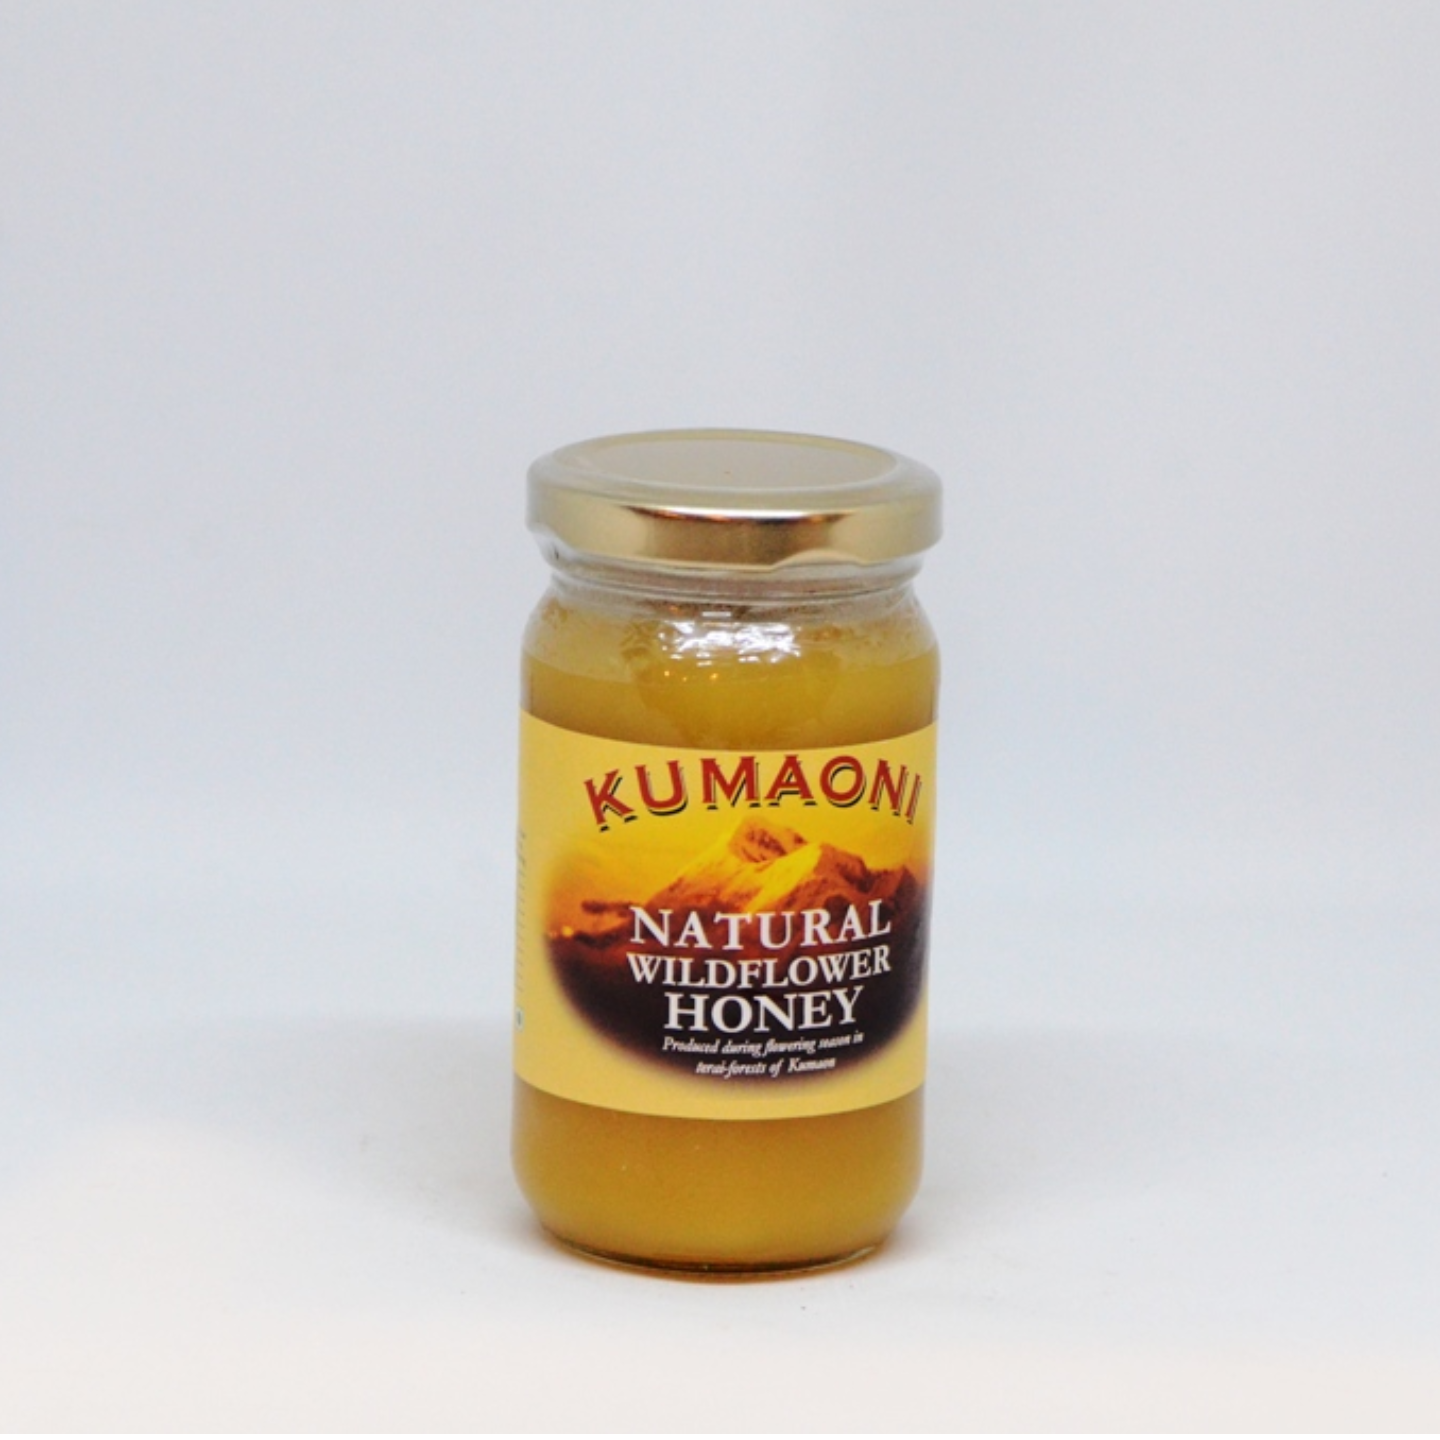 Kumaoni Natural Wildflower Honey 500 gm